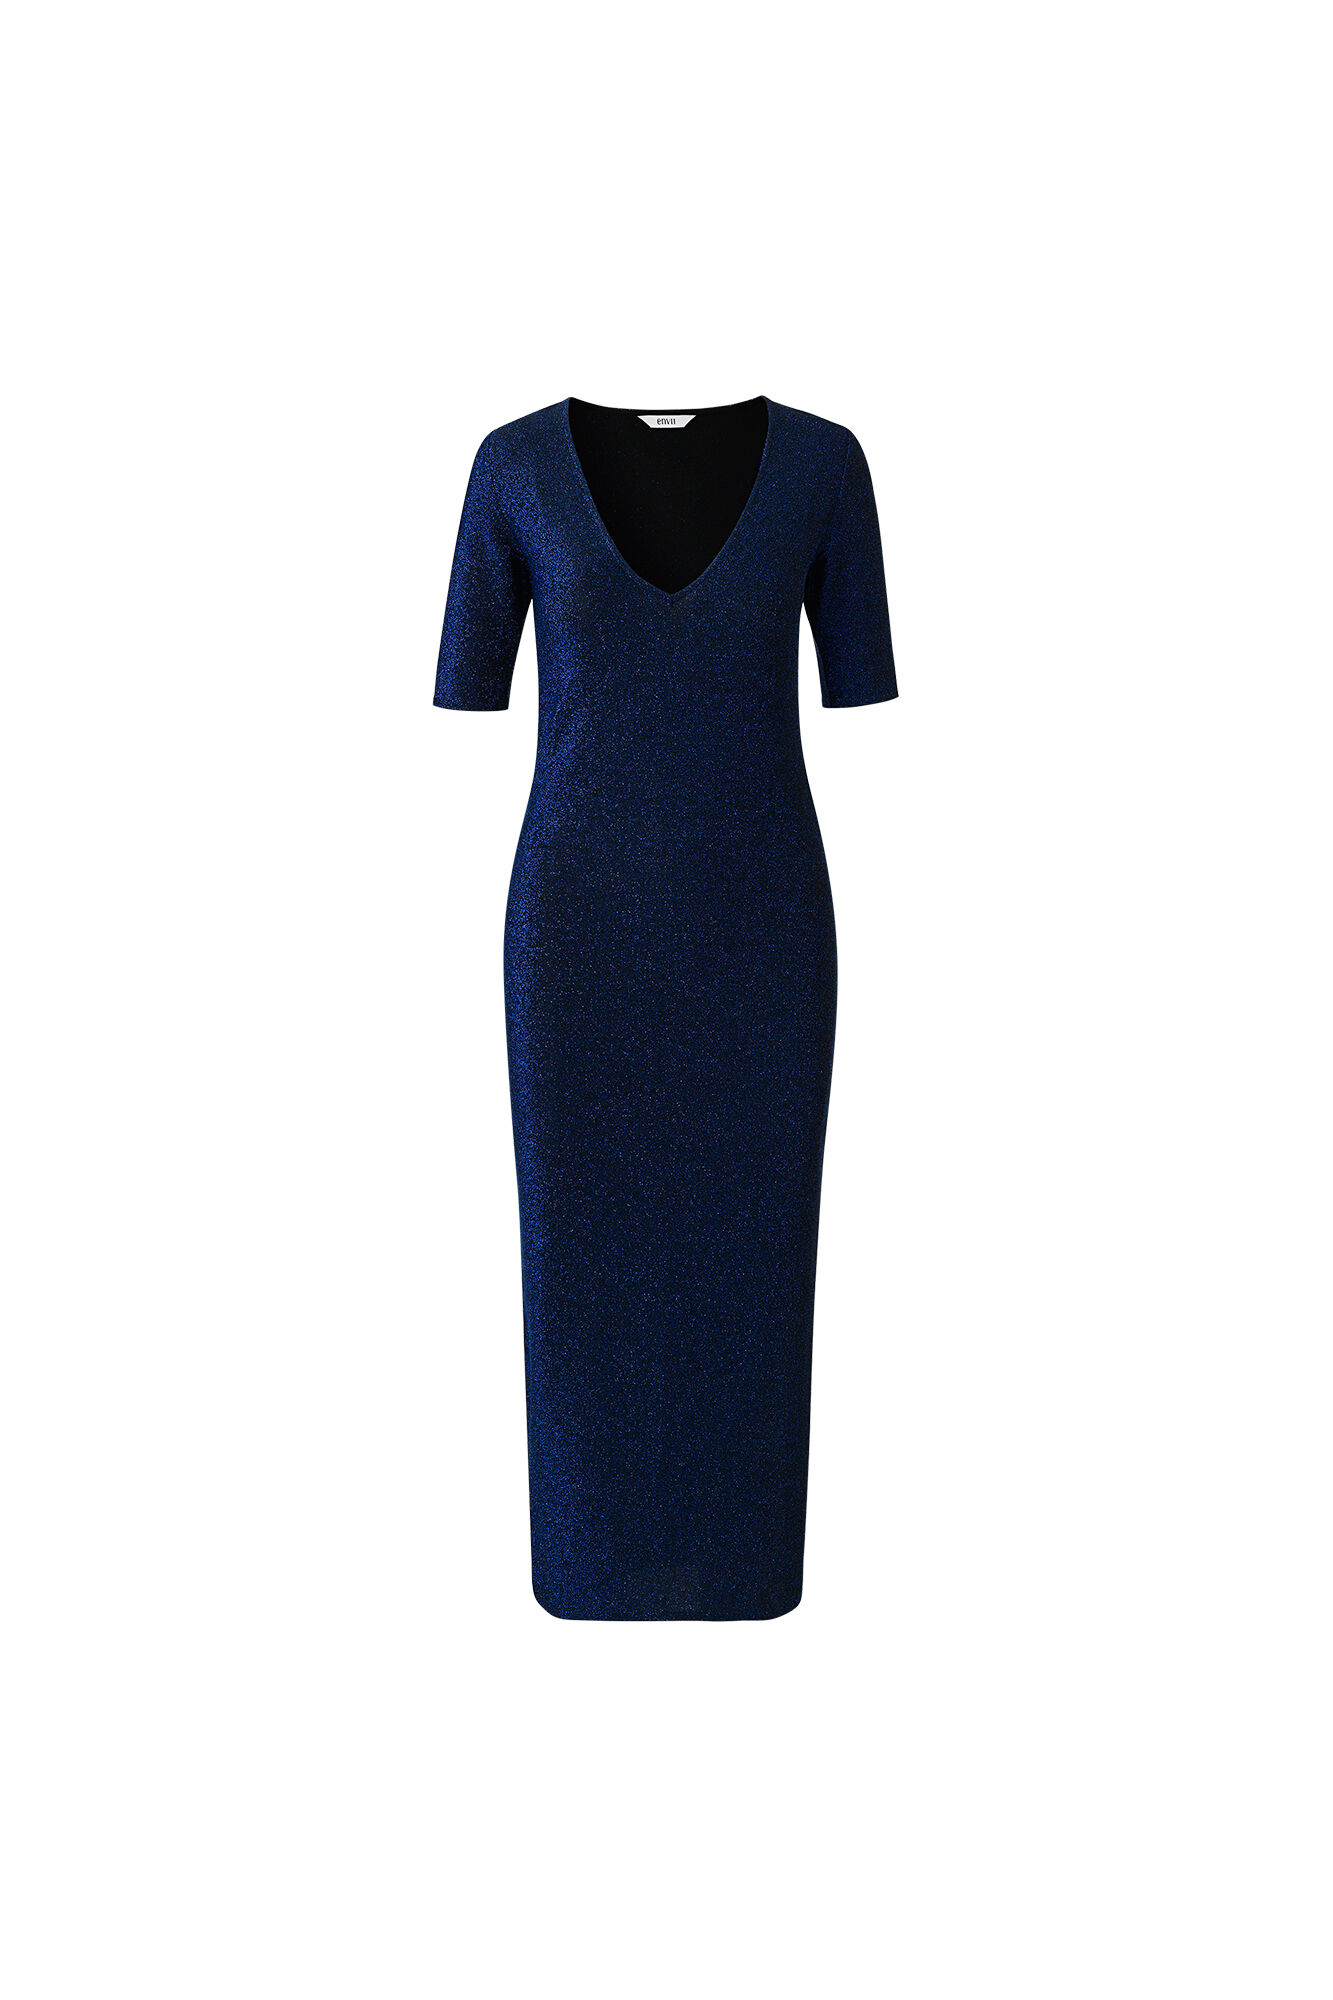 ENCLASS SS DRESS 5933, NAVY GLITTER